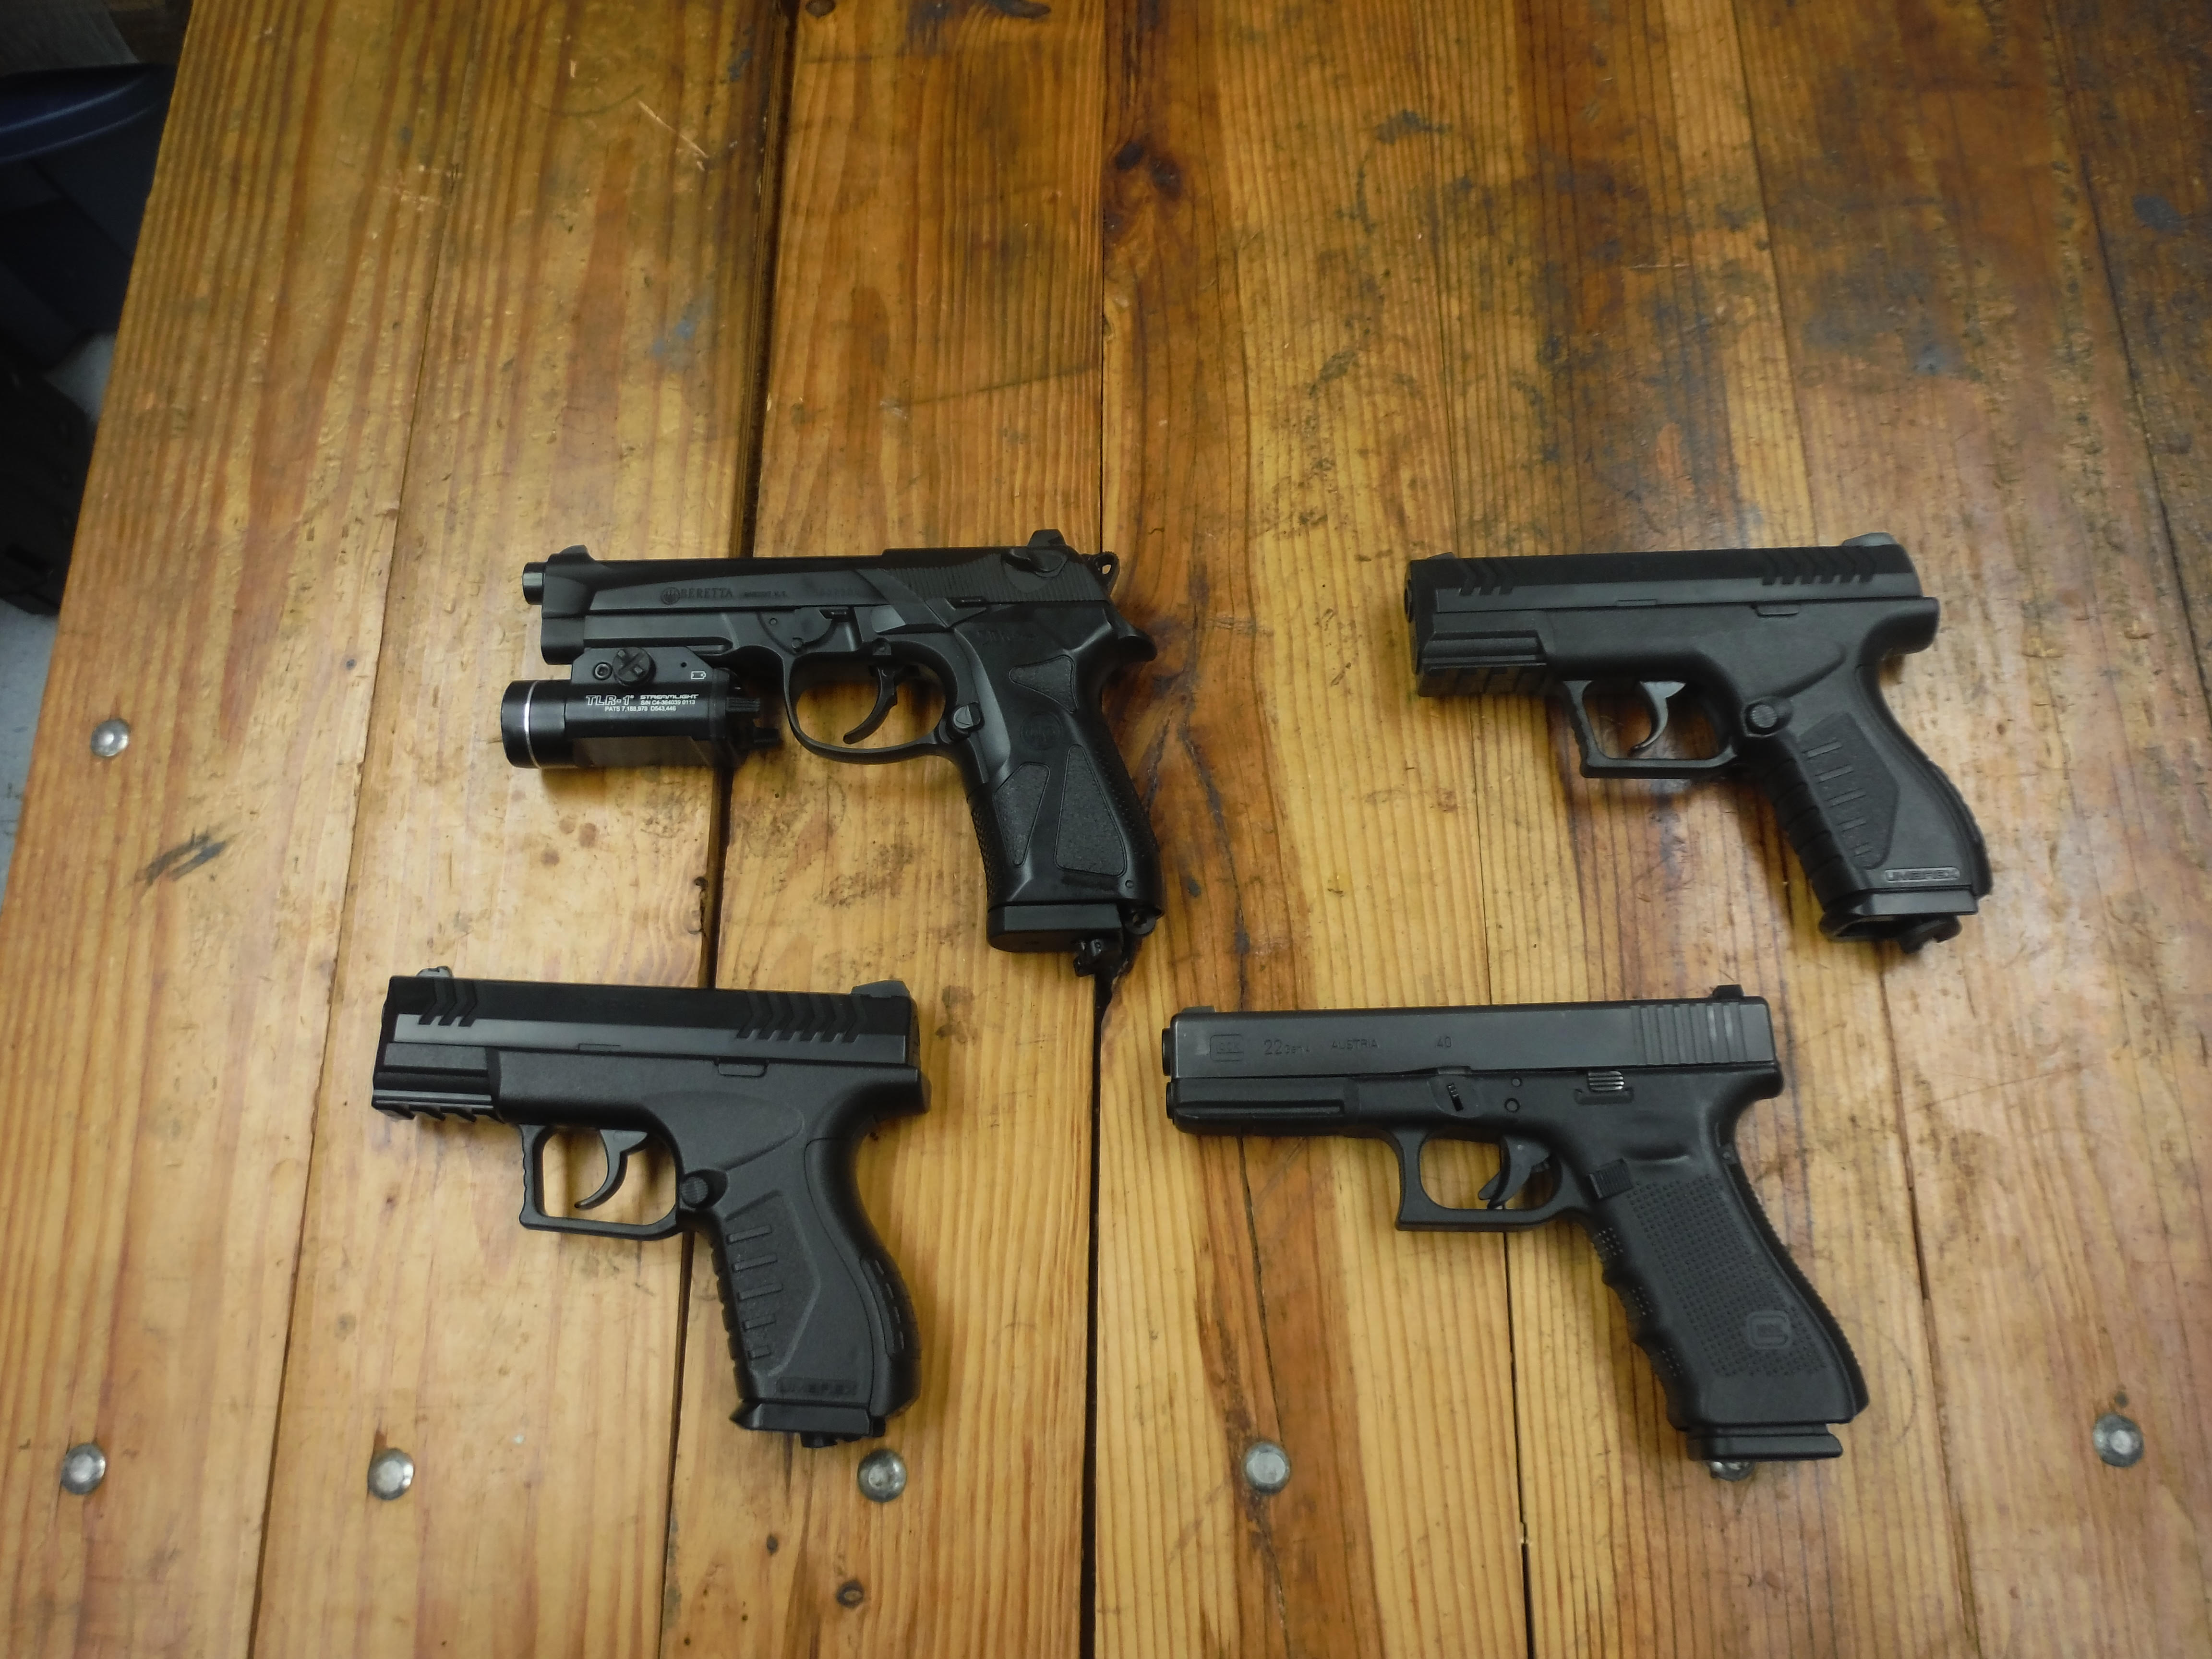 These four pistols were presented in a release by the Athens Police Department to show the similarities between an officer's service weapon (shown on the bottom right) and BB guns used by juveniles in a recent incident.